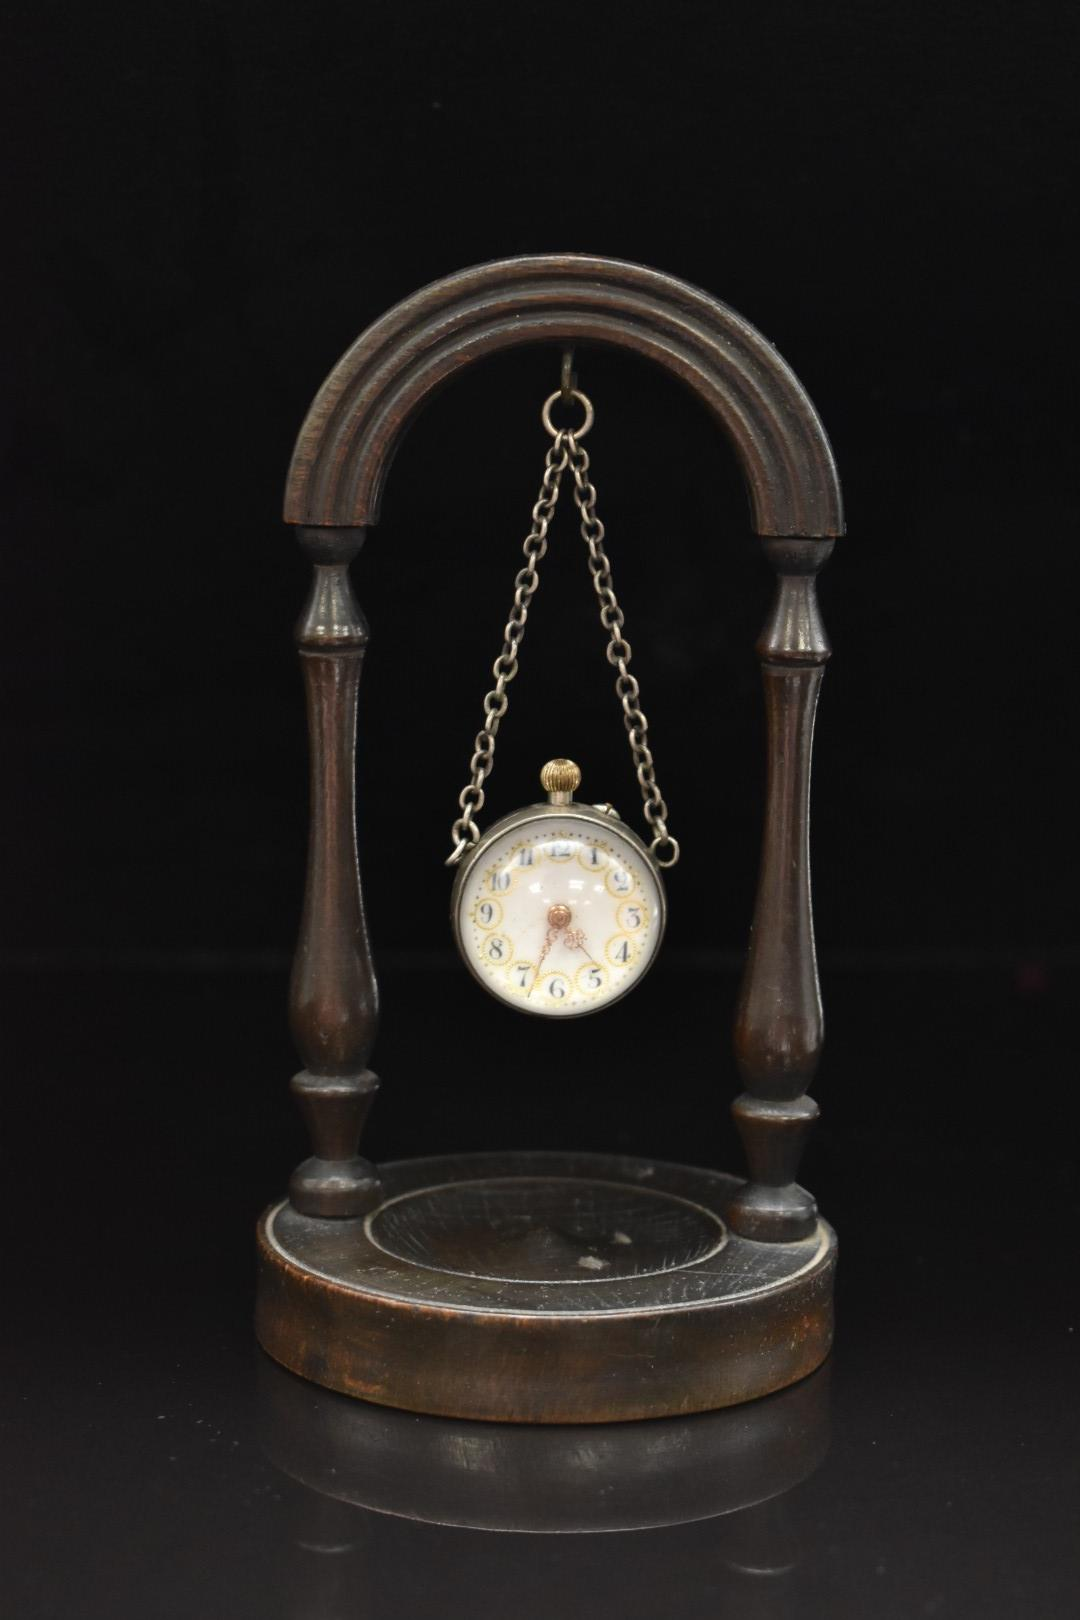 19th or early 20thC fob watch with exhibition glass front and Essex crystal rear depicting a bird on